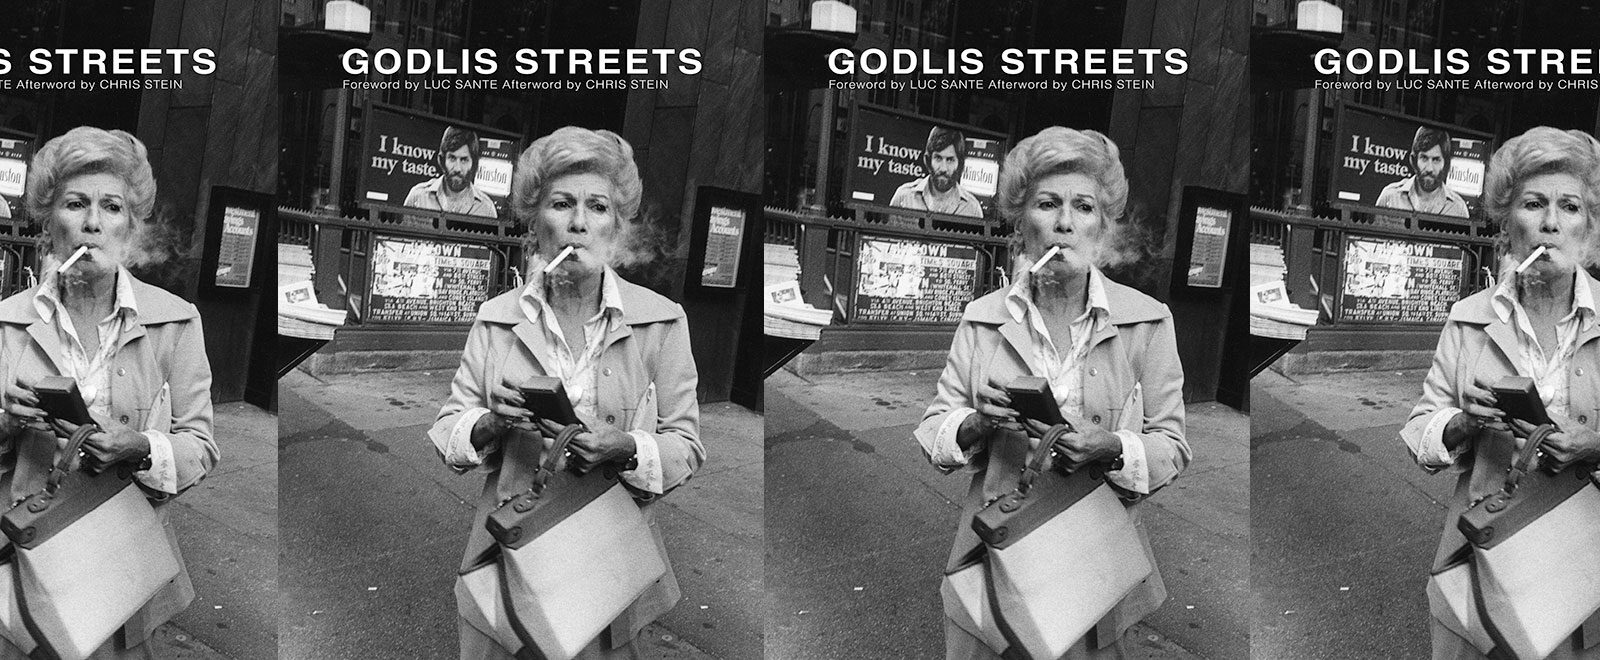 Godlis David New York Photographer History Was Made at Night Godlis Streets Street Photography 70s 80s CBGB CBGB's